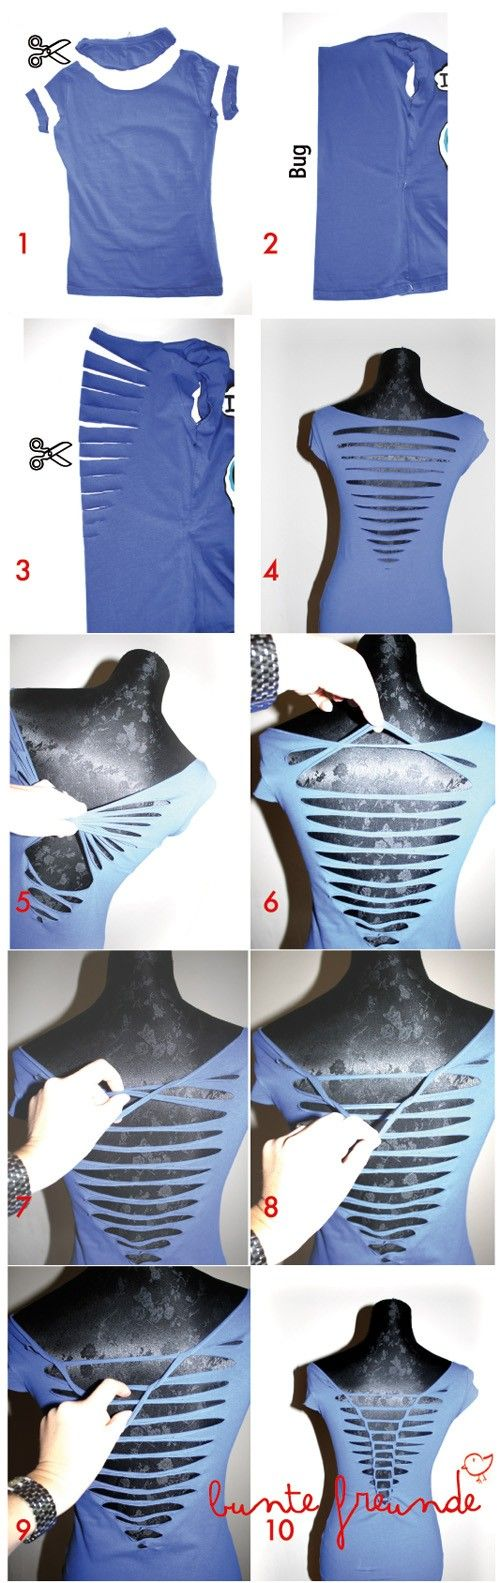 Re-styling an old t-shirt to make a new cut-out t-shirt #clothing sense